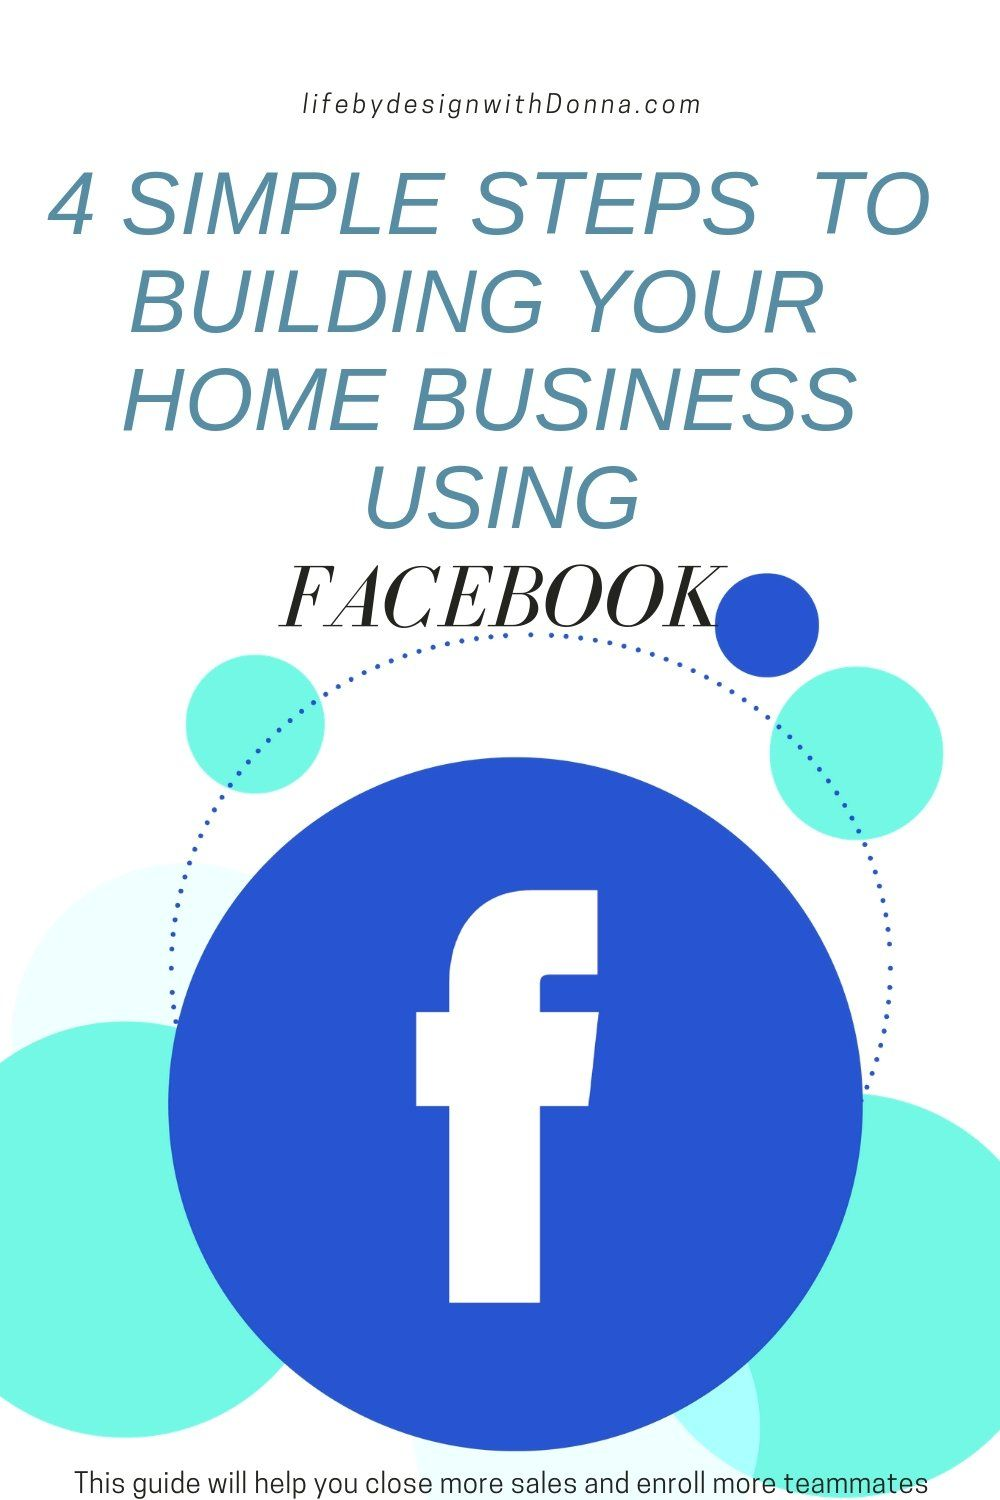 The Easy Guide To Building Your MLM or Home Business on